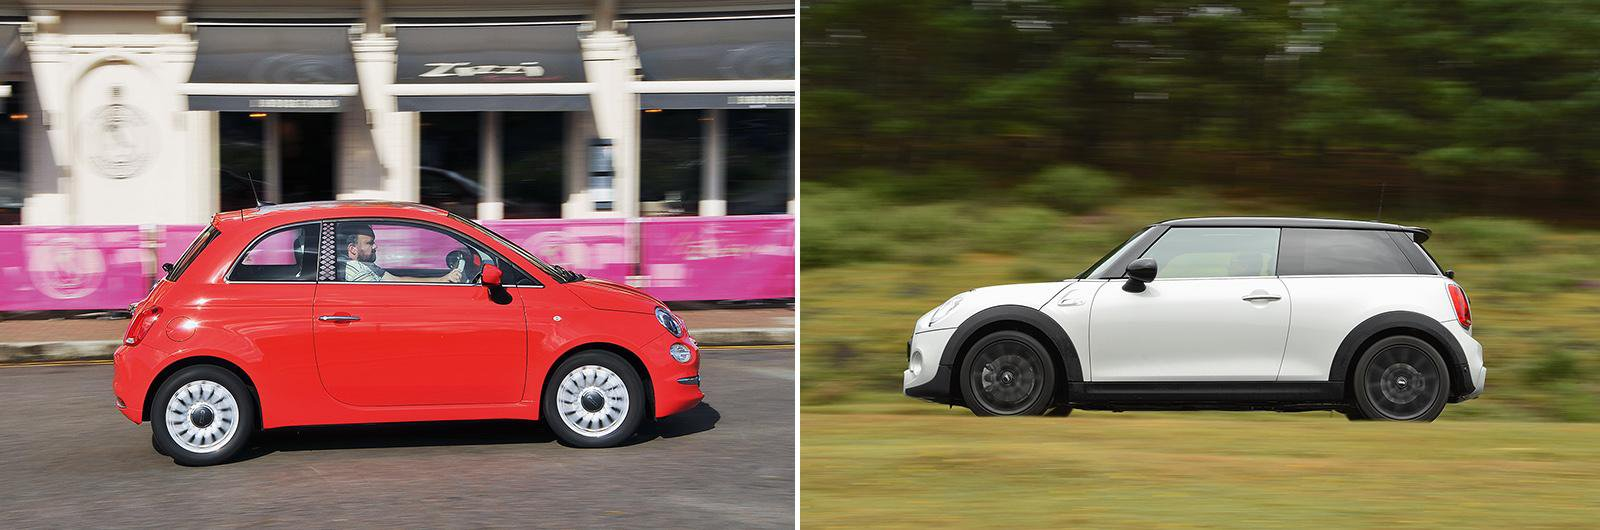 New Fiat 500 Vs Used Mini Cooper Which Is Best